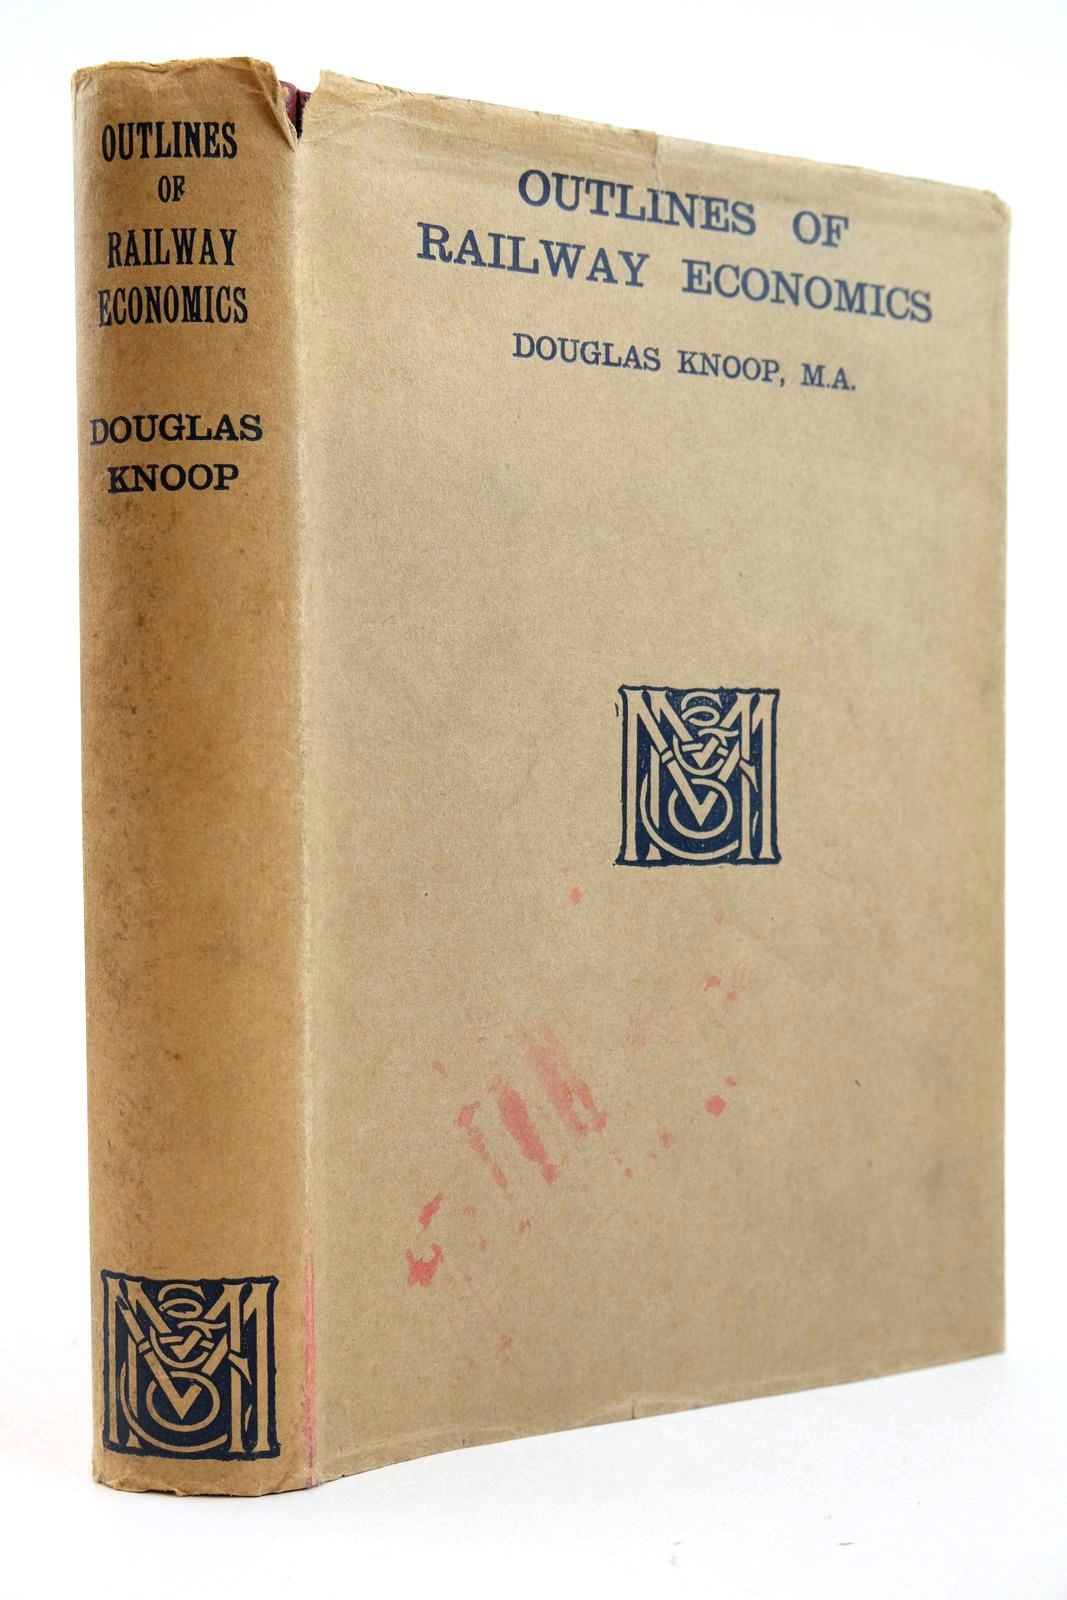 Photo of OUTLINES OF RAILWAY ECONOMICS written by Knoop, Douglas published by Macmillan & Co. Ltd. (STOCK CODE: 2133019)  for sale by Stella & Rose's Books